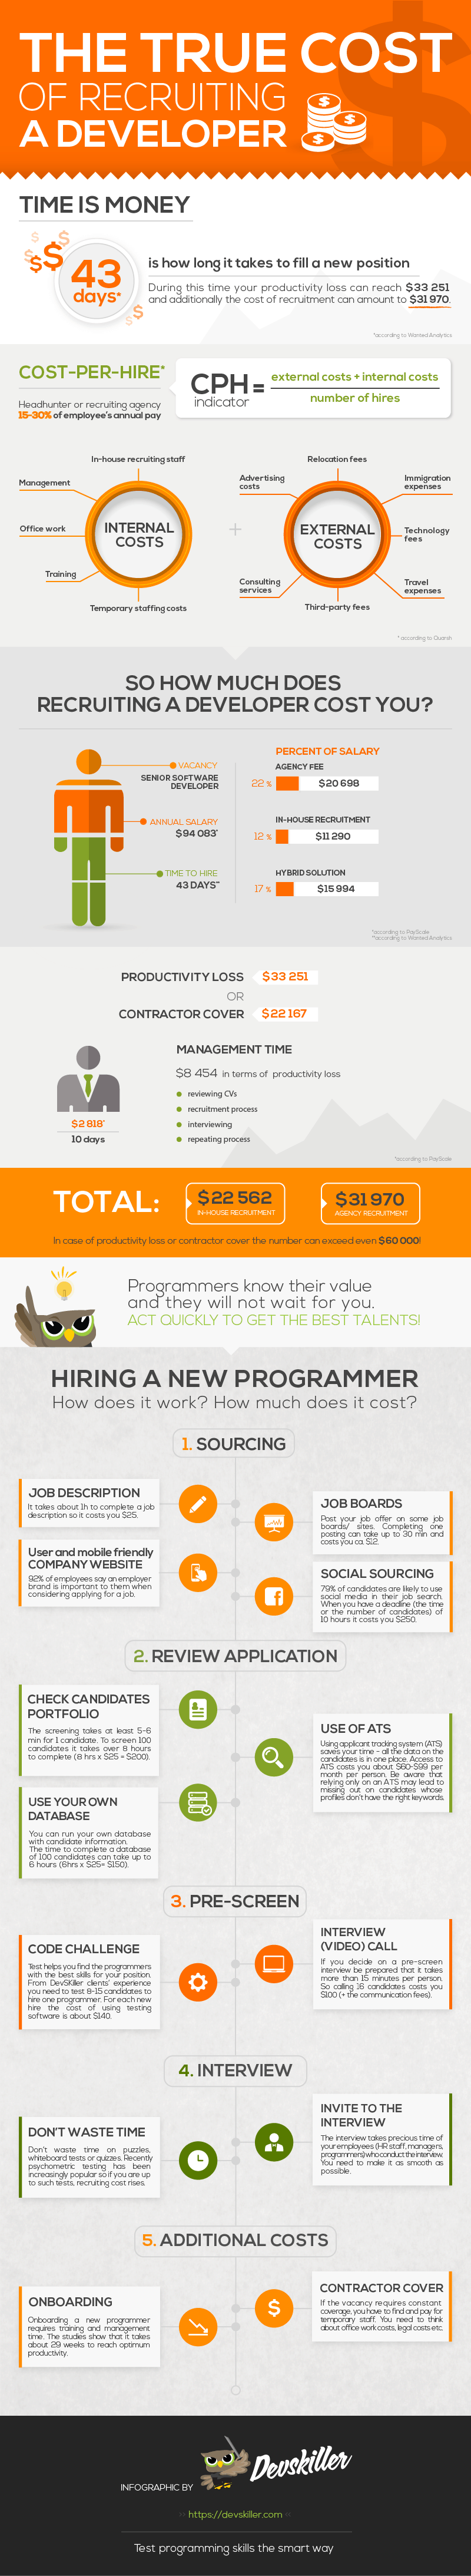 devskiller-true-cost-of-recruiting-a-developer-infographic